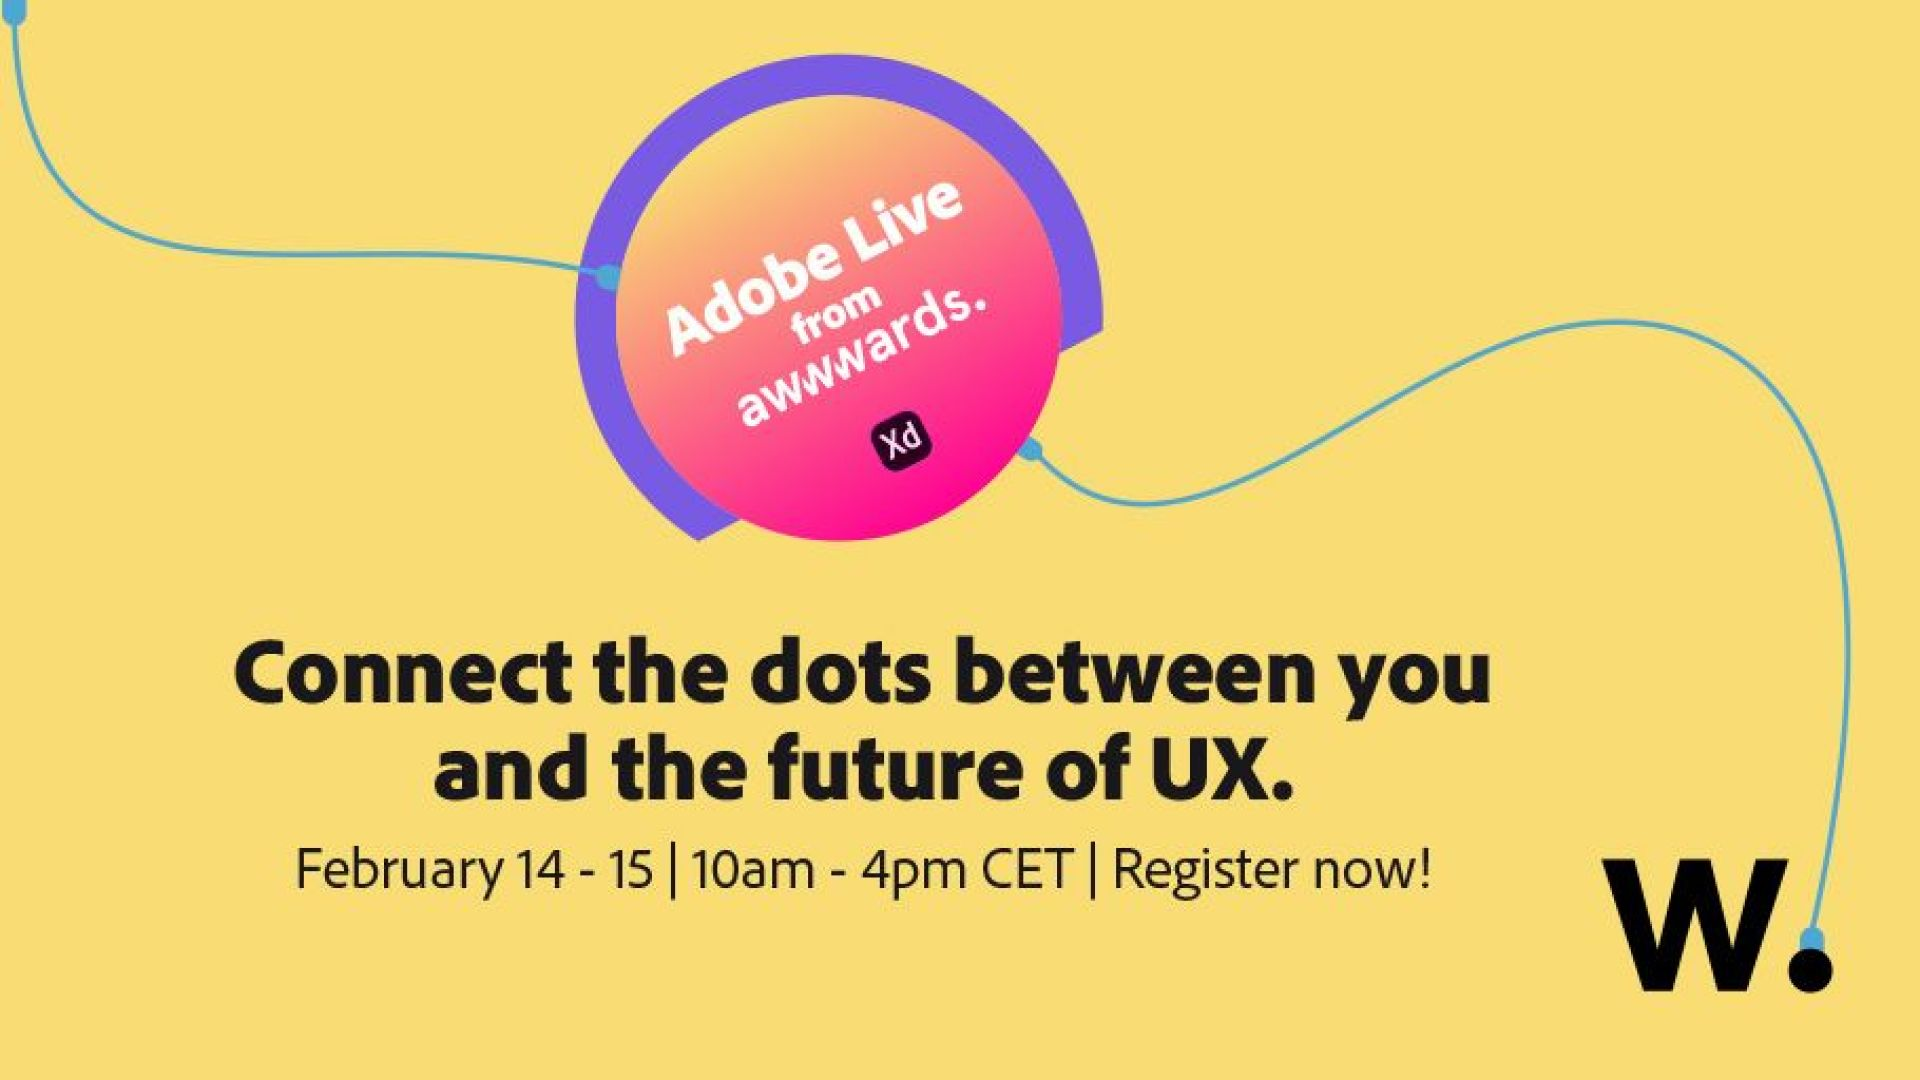 The future of UX: Adobe livestream from Awwwards